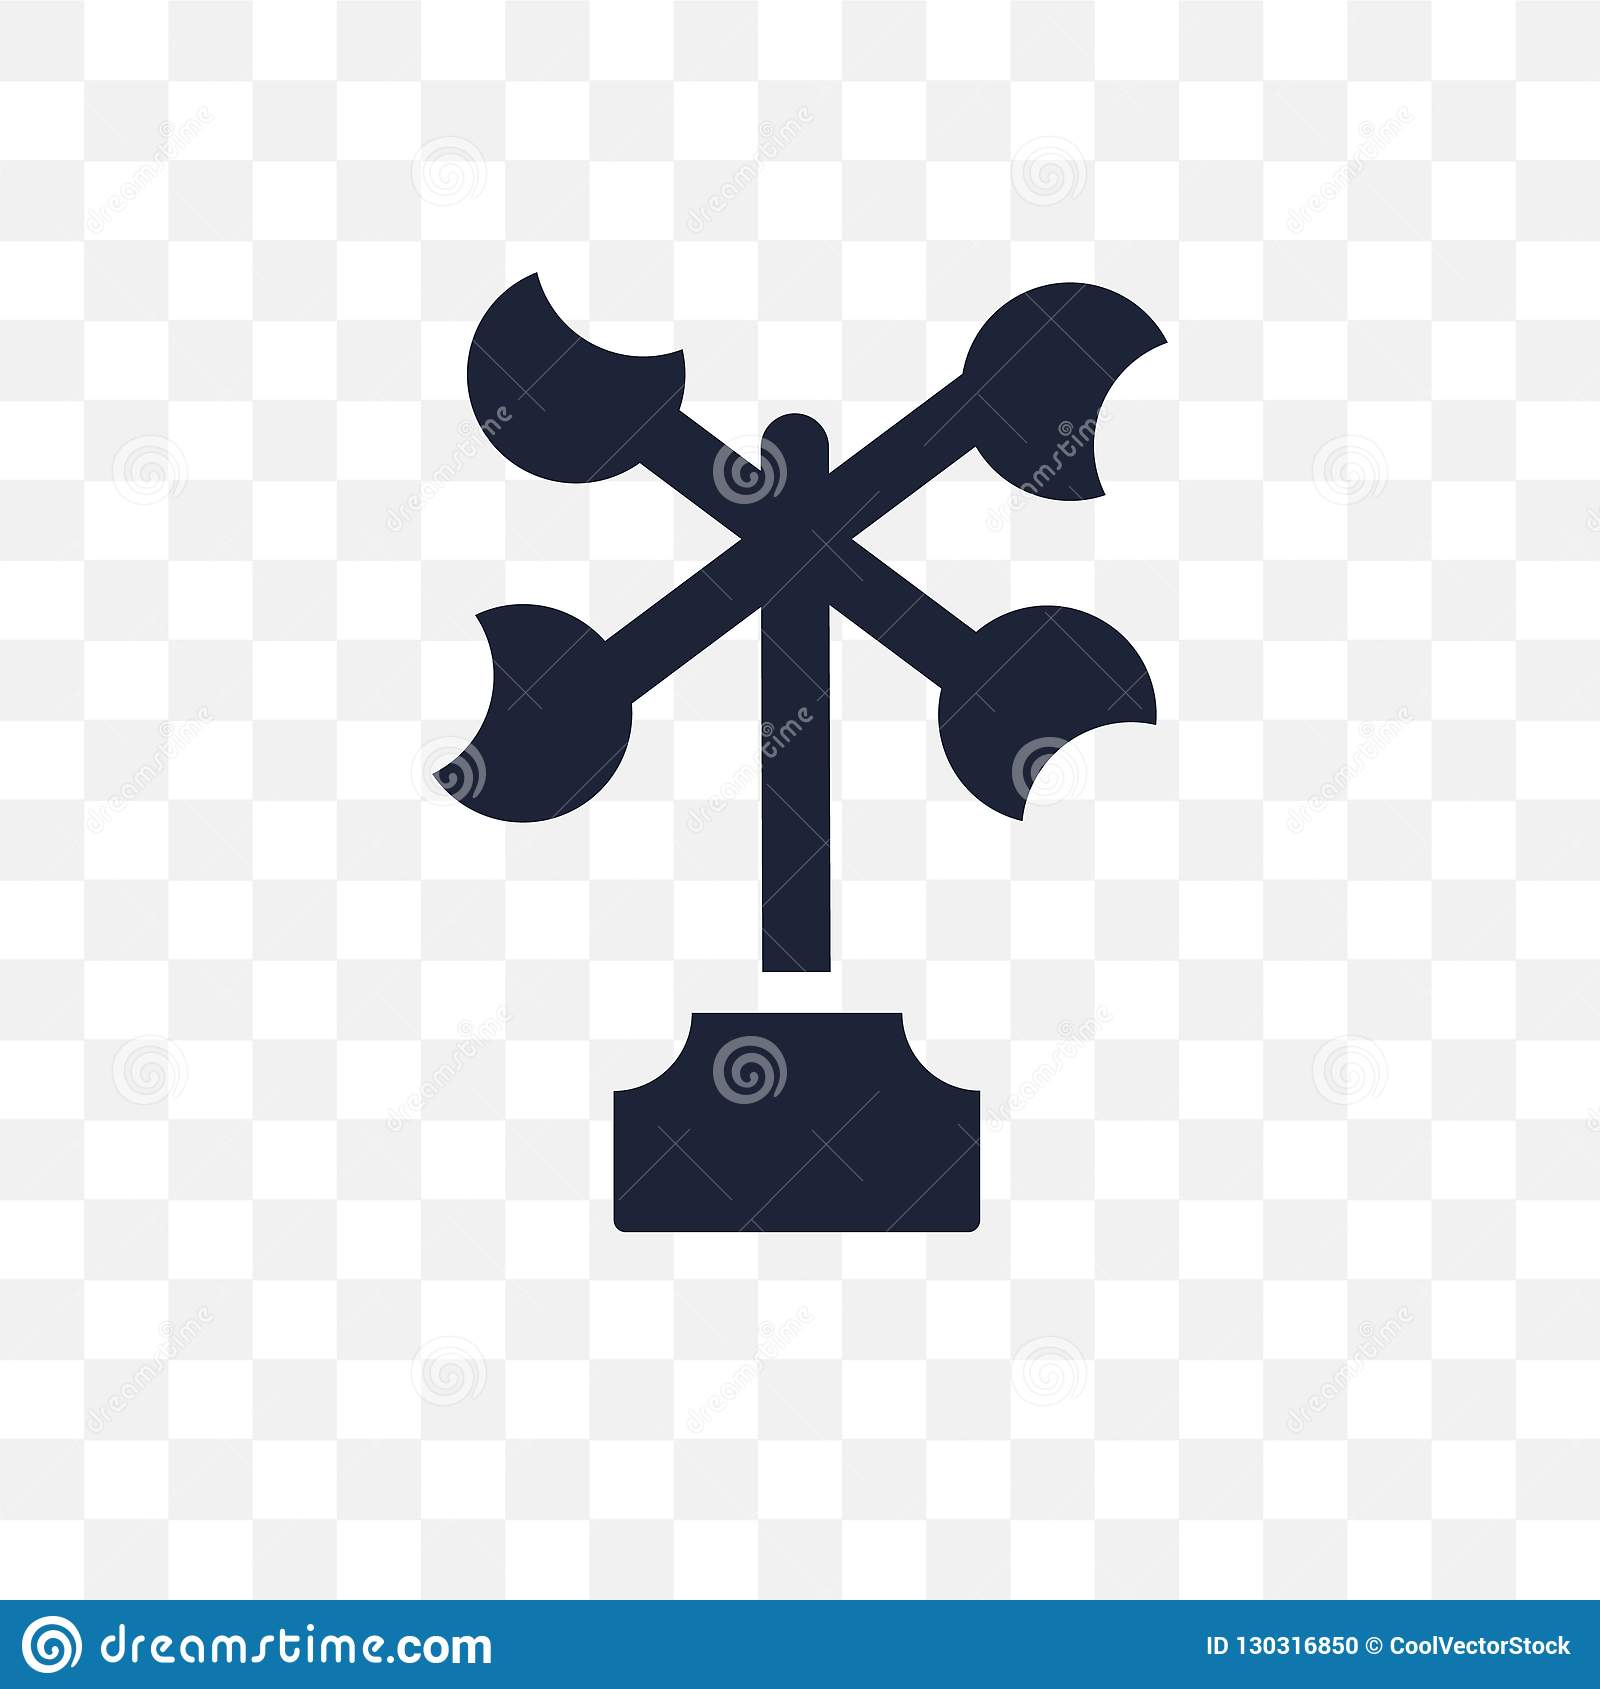 Anemometer transparent icon. Anemometer symbol design from Weather collection.